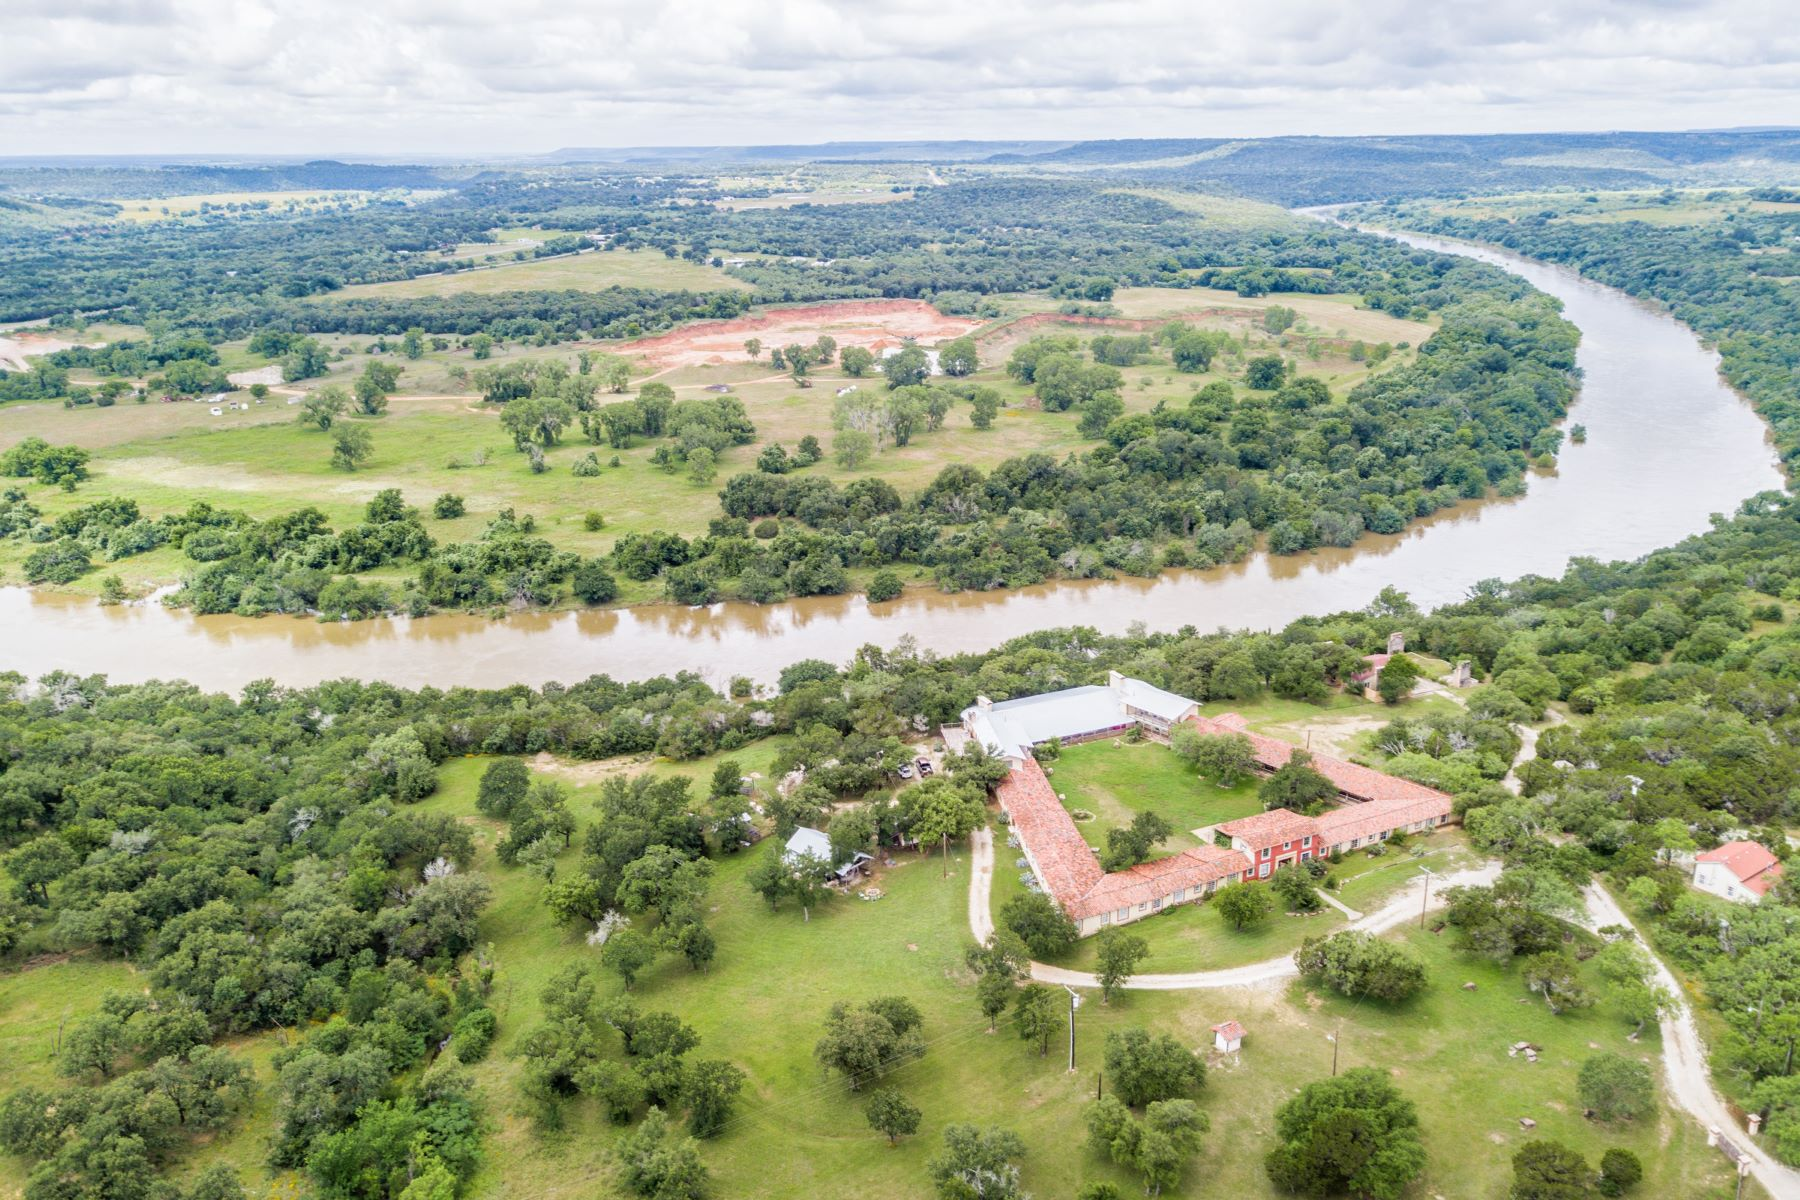 Farm / Ranch / Plantation for Sale at Four Rivers Lodge 133 Seybold Road, Mineral Wells, Texas 76067 United States